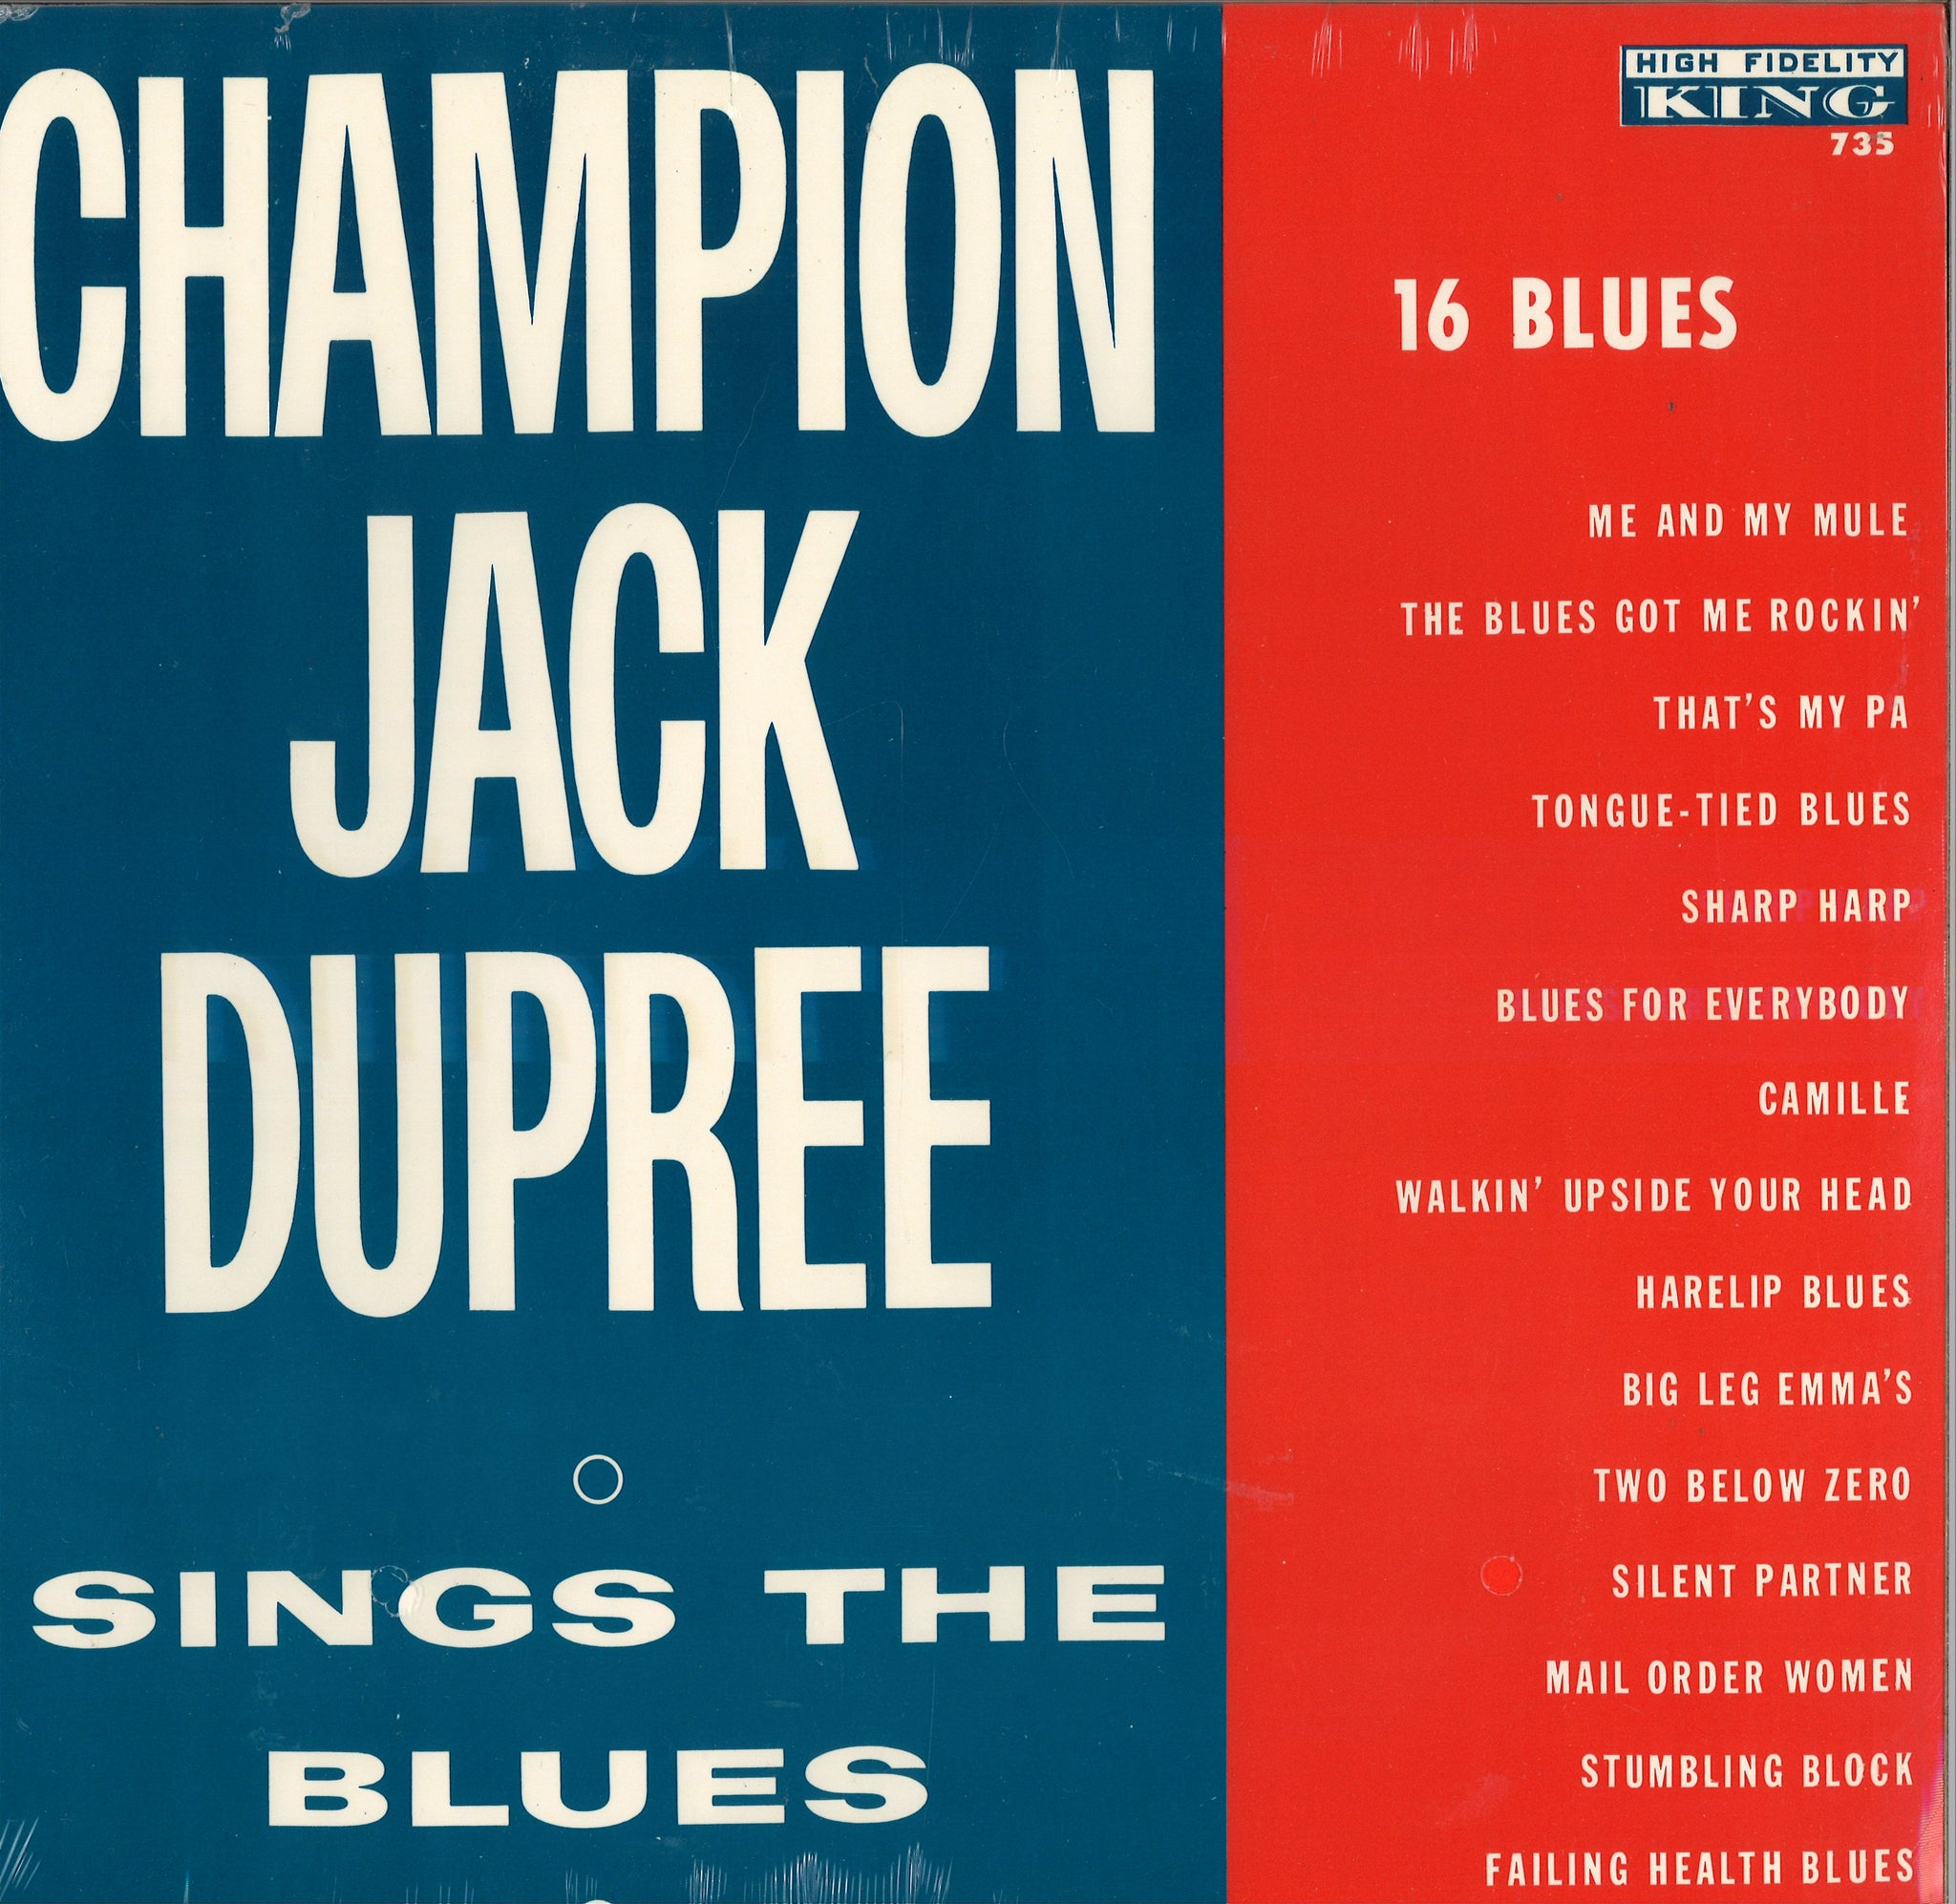 Champion Jack Dupree Sings The Blues